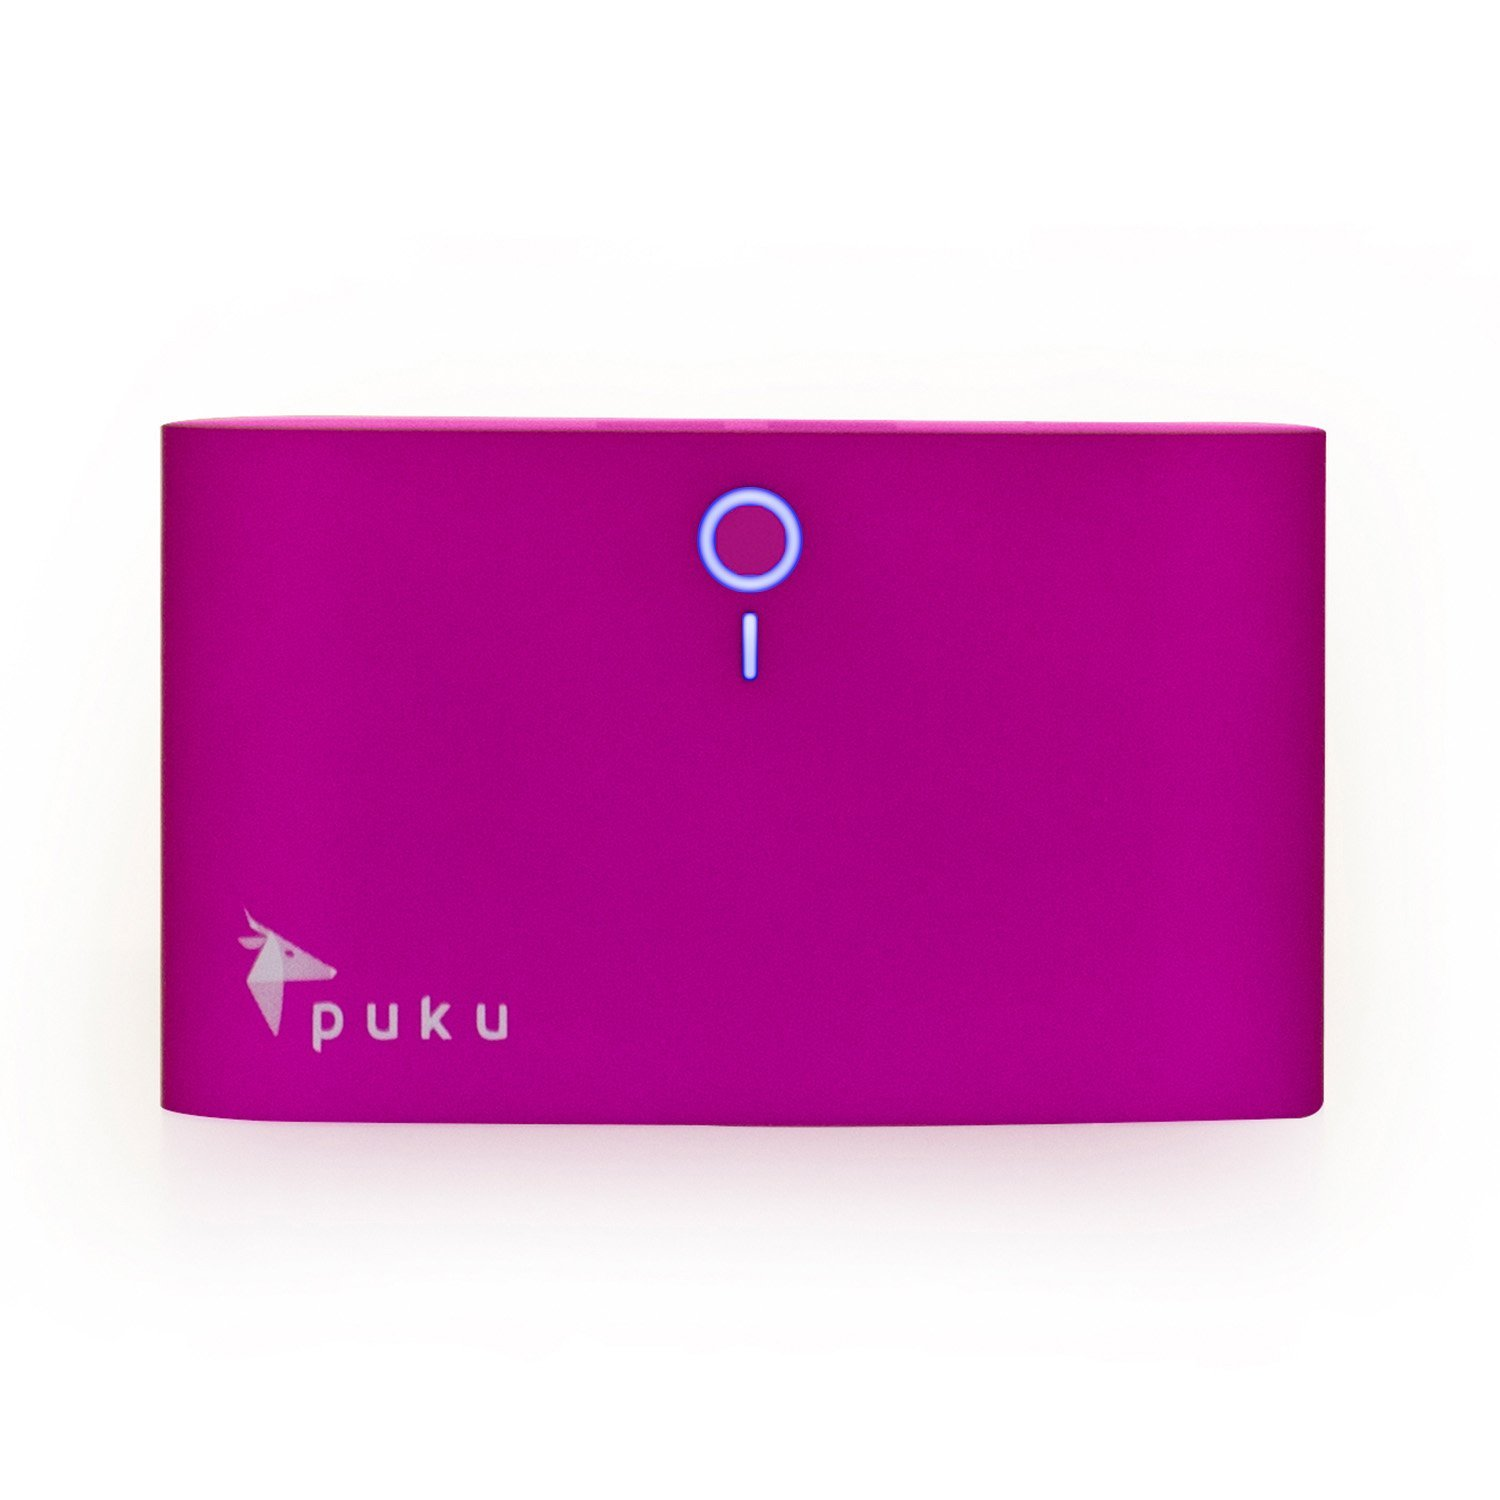 Puku S8 8000mAh Smartphone and Tablet Portable Charger - Retail Packaging - Purple